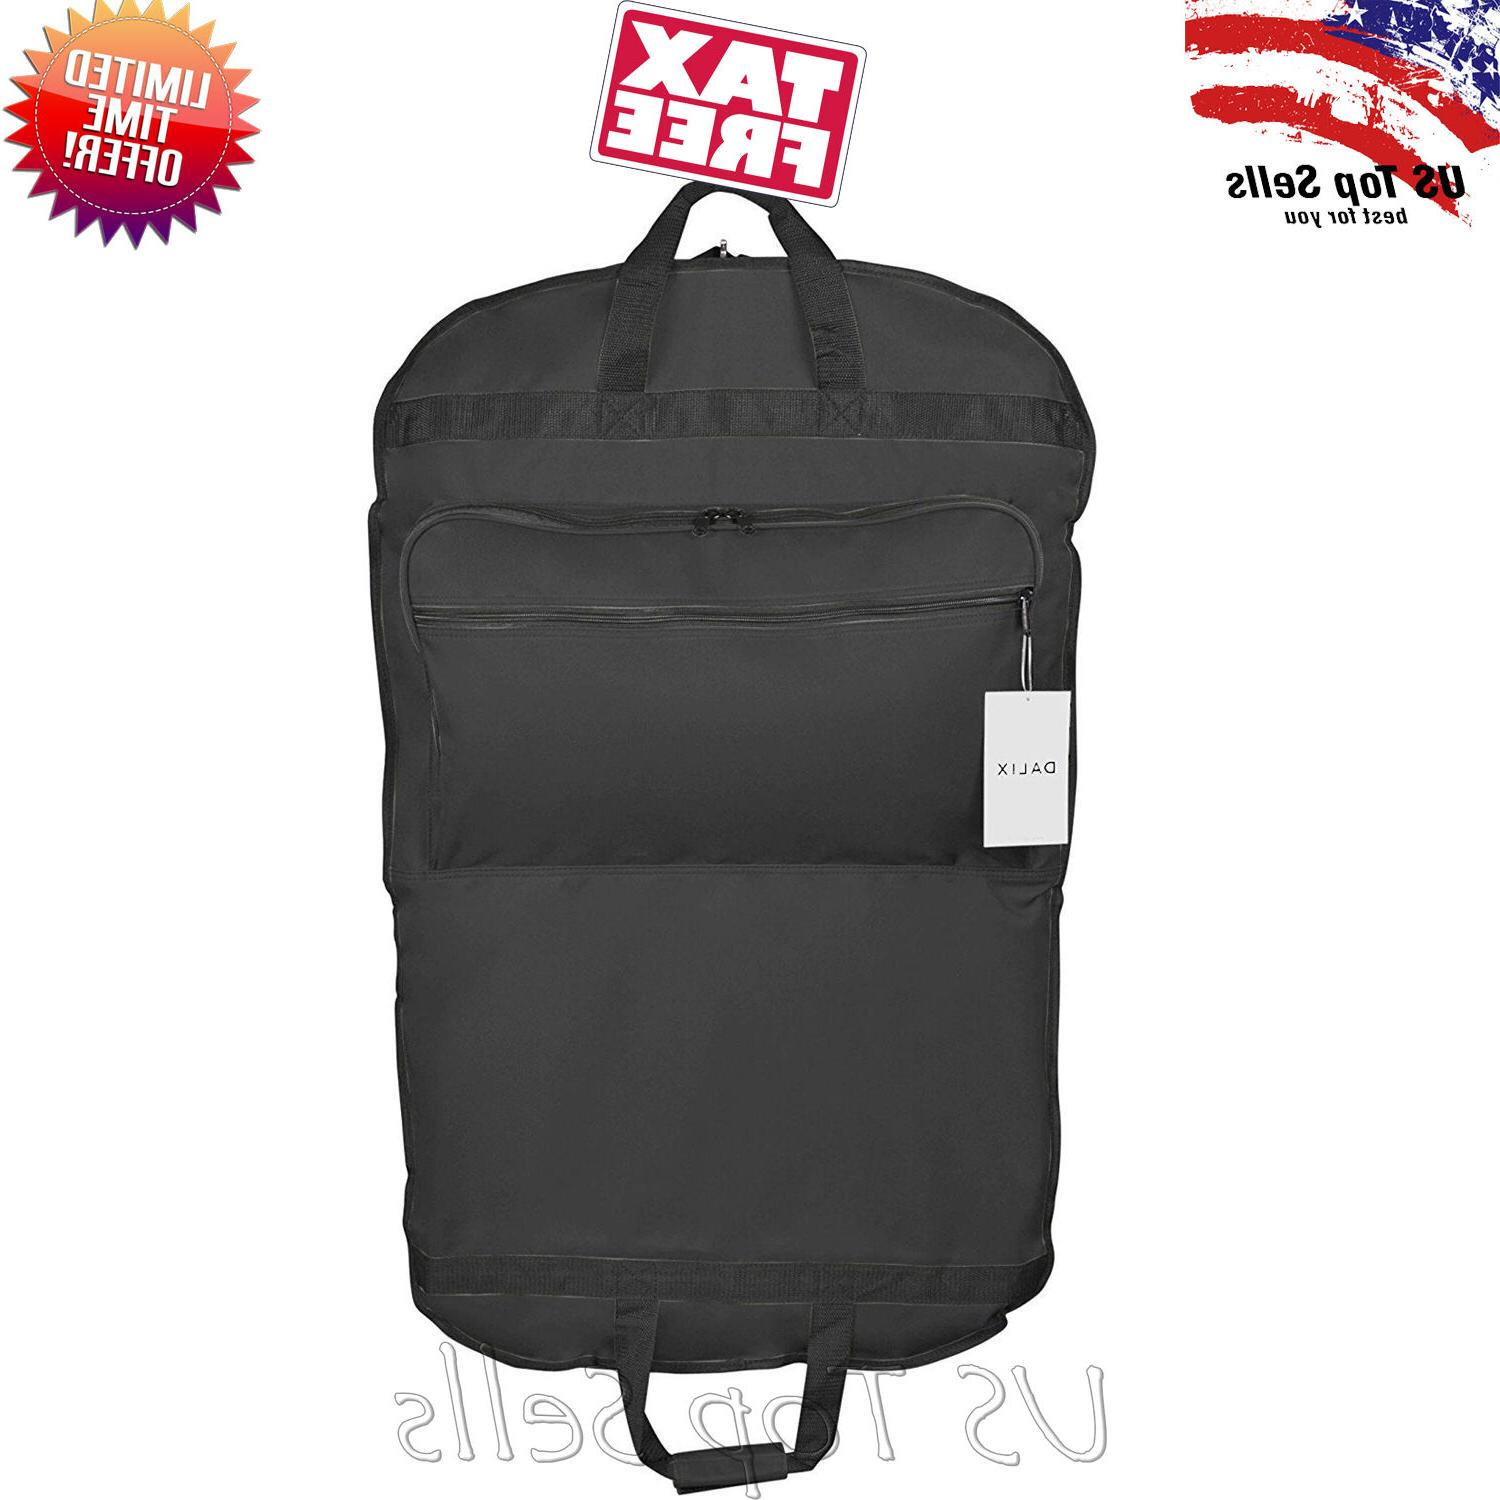 Clothes Cover Business Luggage Storage